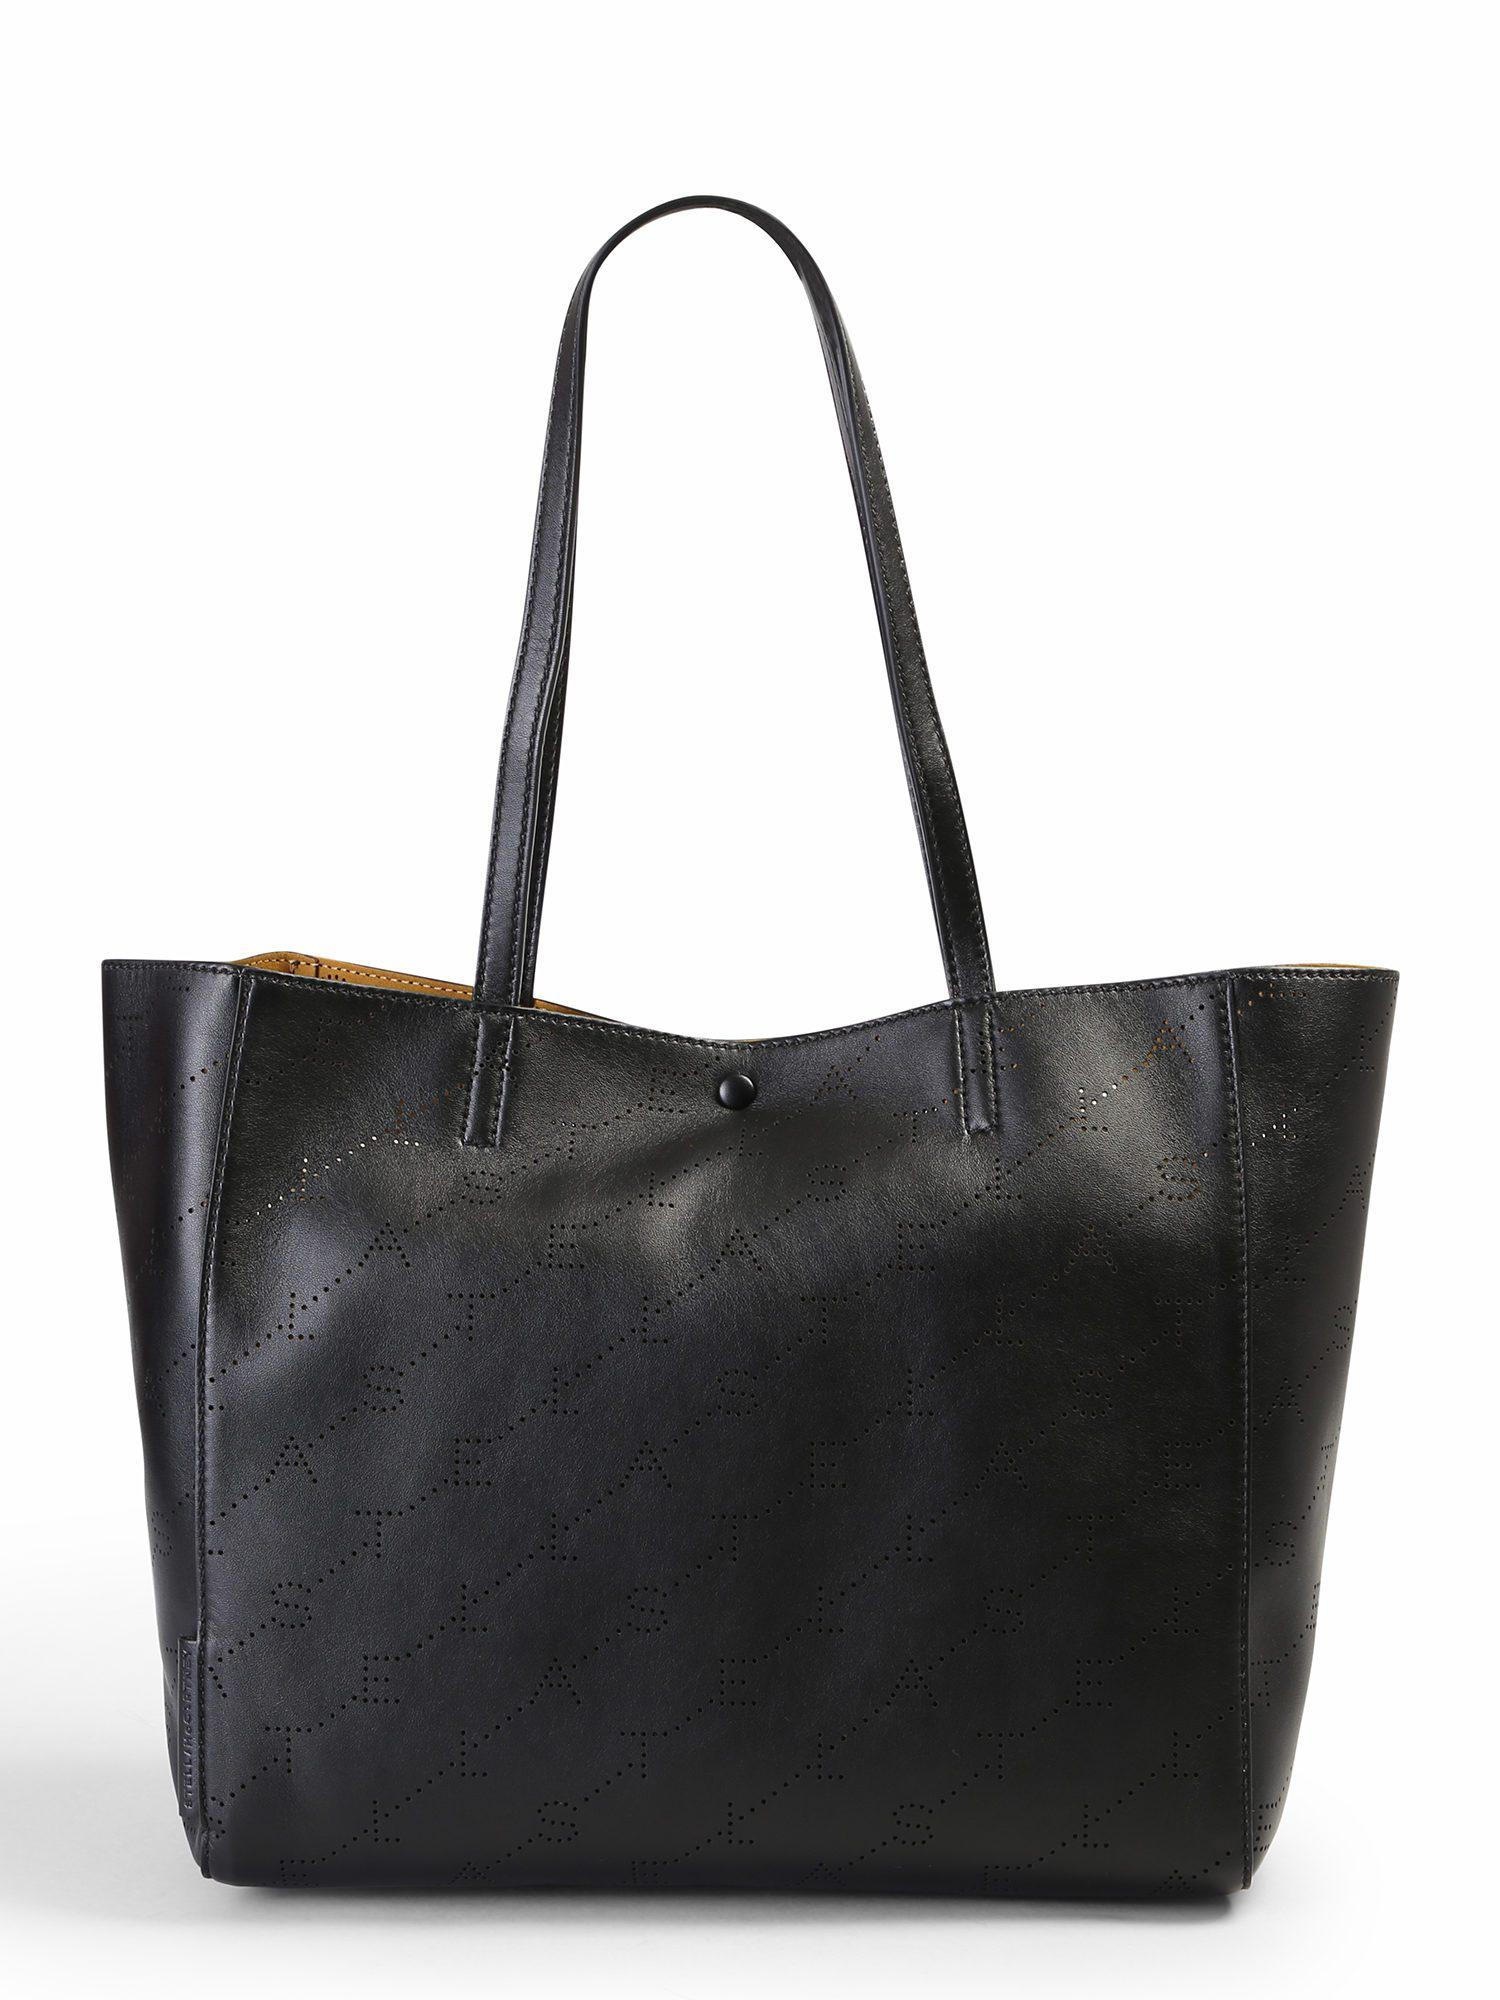 ca7e74610f42 Stella Mccartney Monogram Small Tote Bag in Black - Lyst